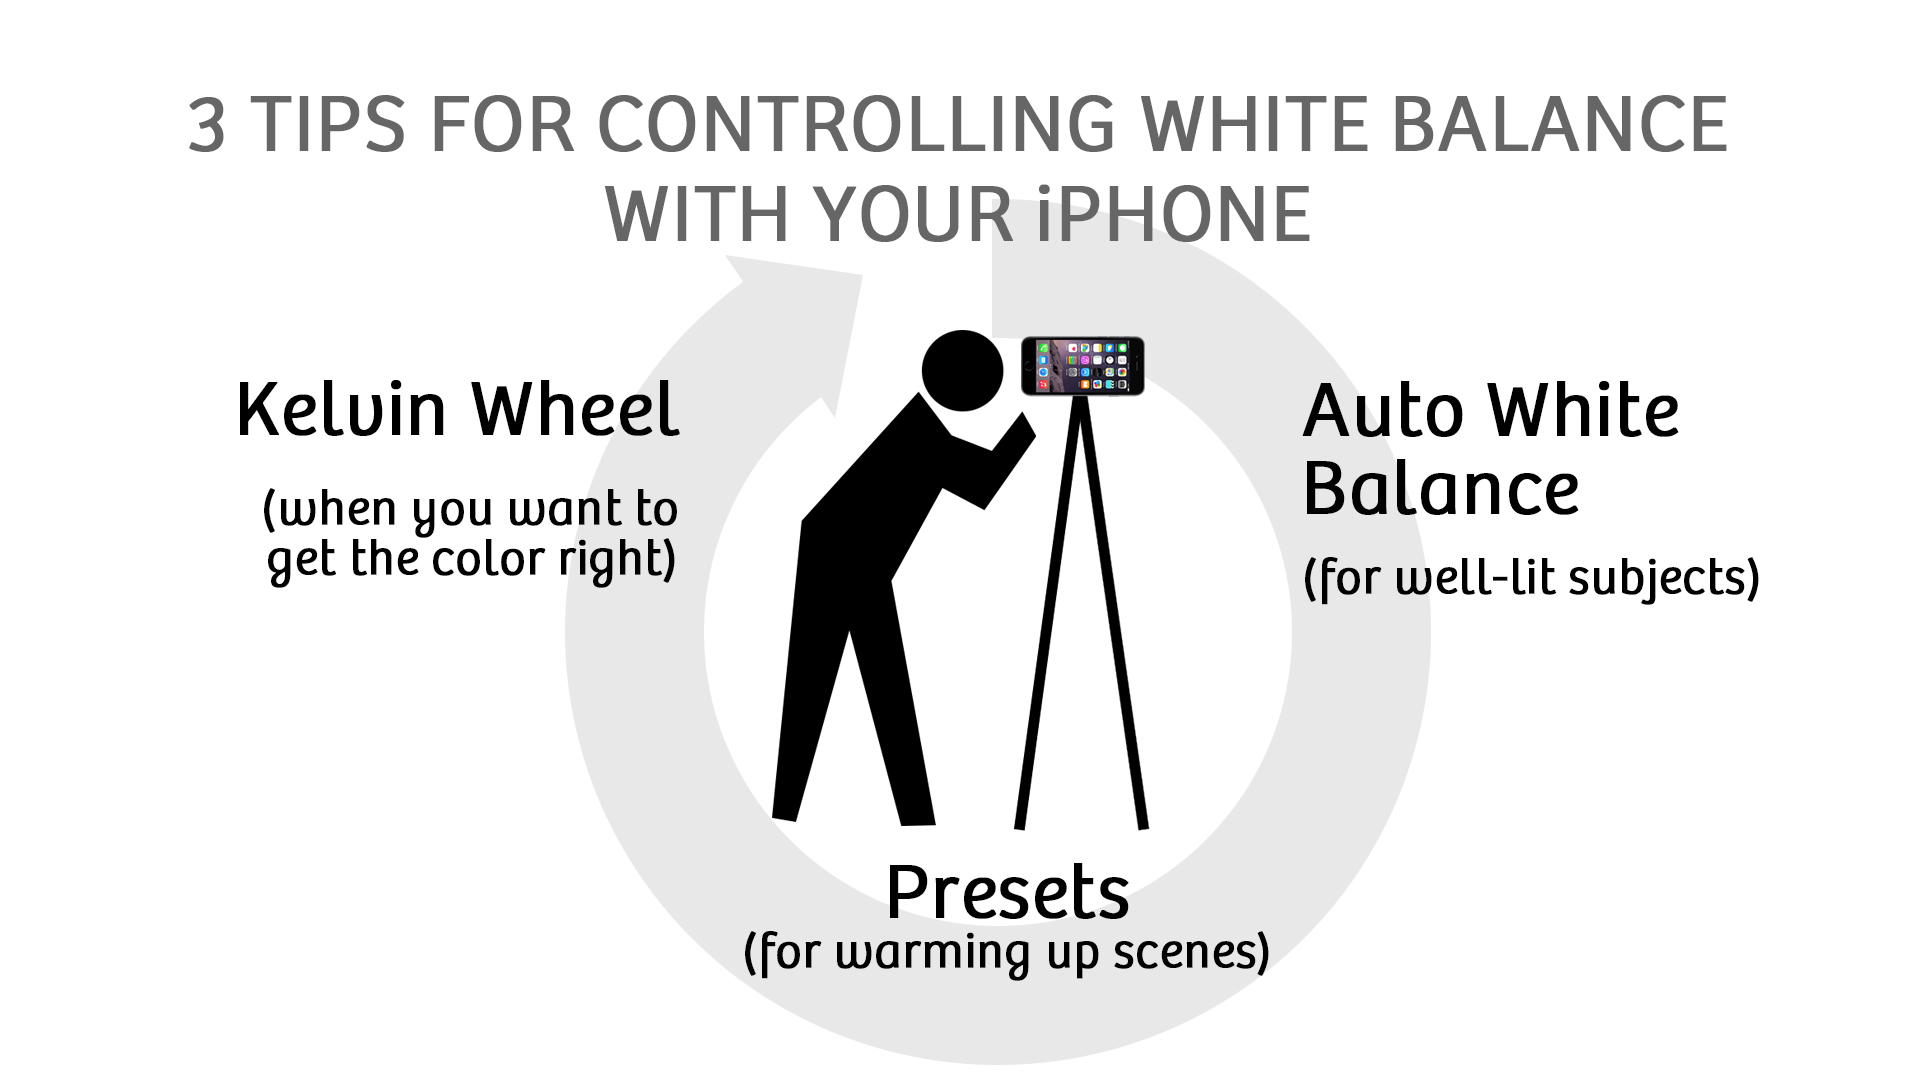 3 Tips for Controlling White Balance